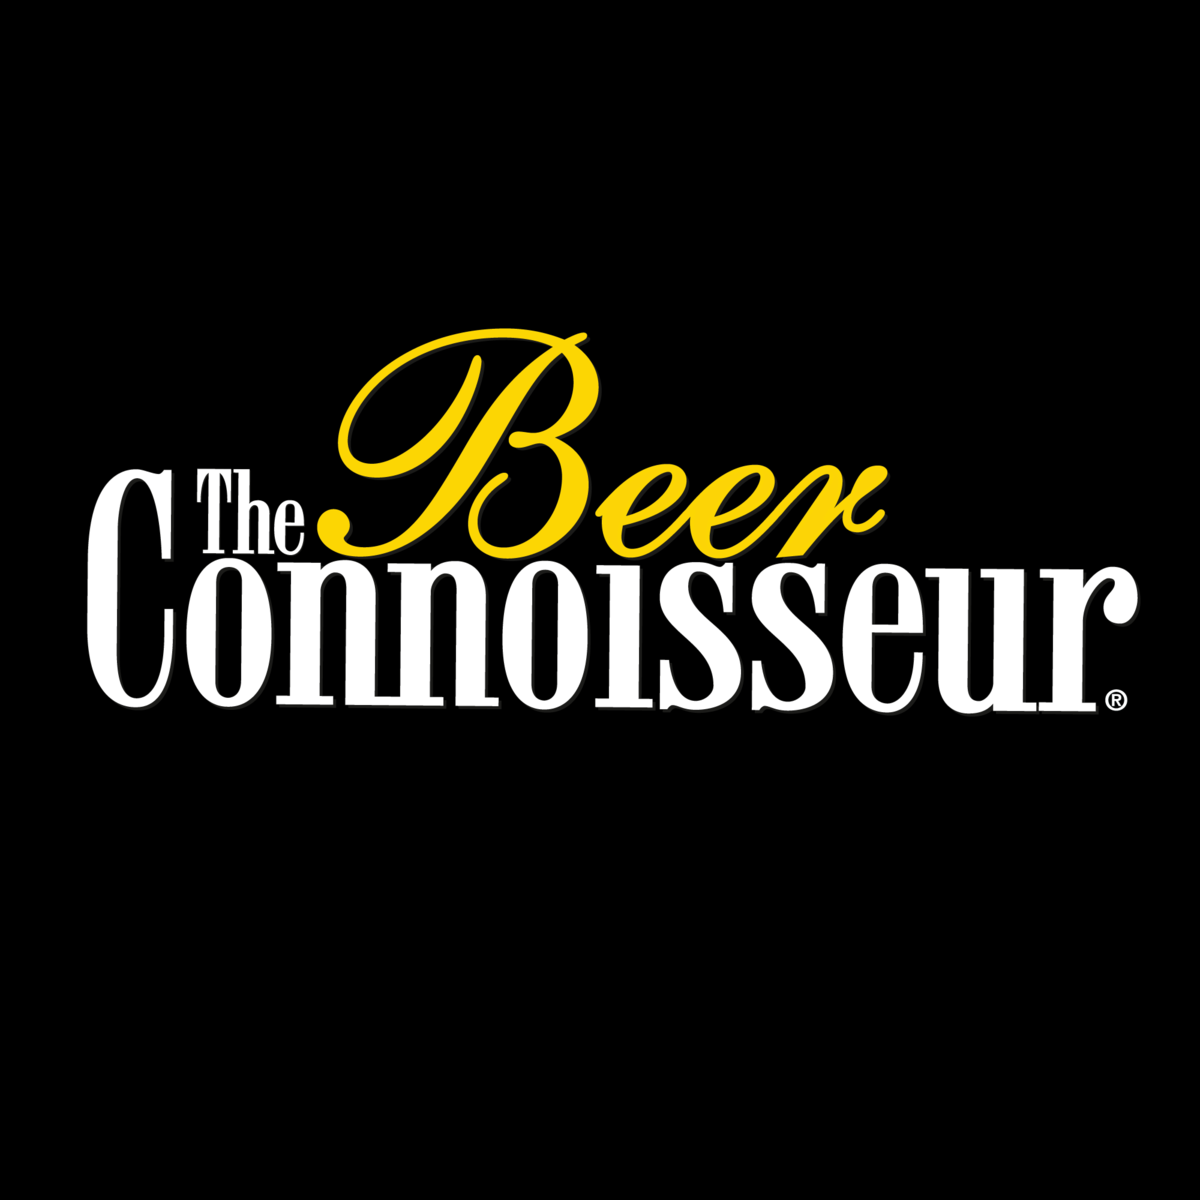 the-beer-connoisseur-black-square.png